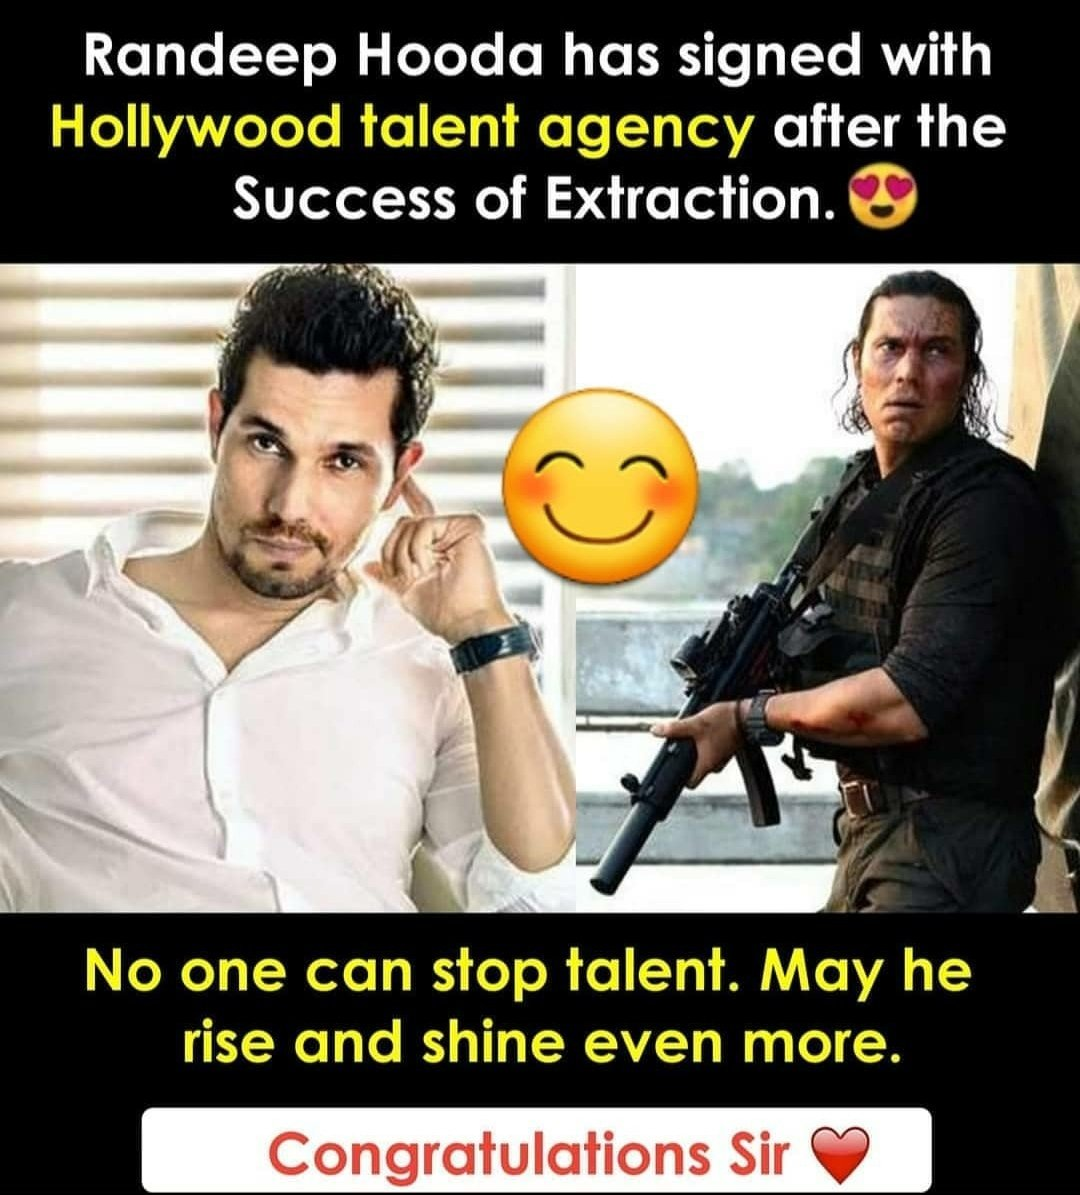 Congratulations sir!!! 🎉🎉🎉 You have done a excellent work in extraction 💯 You really deserve this!!!!!  @RandeepHooda  #randeephooda  #talent  #Hollywood https://t.co/zCDgcGCTuw